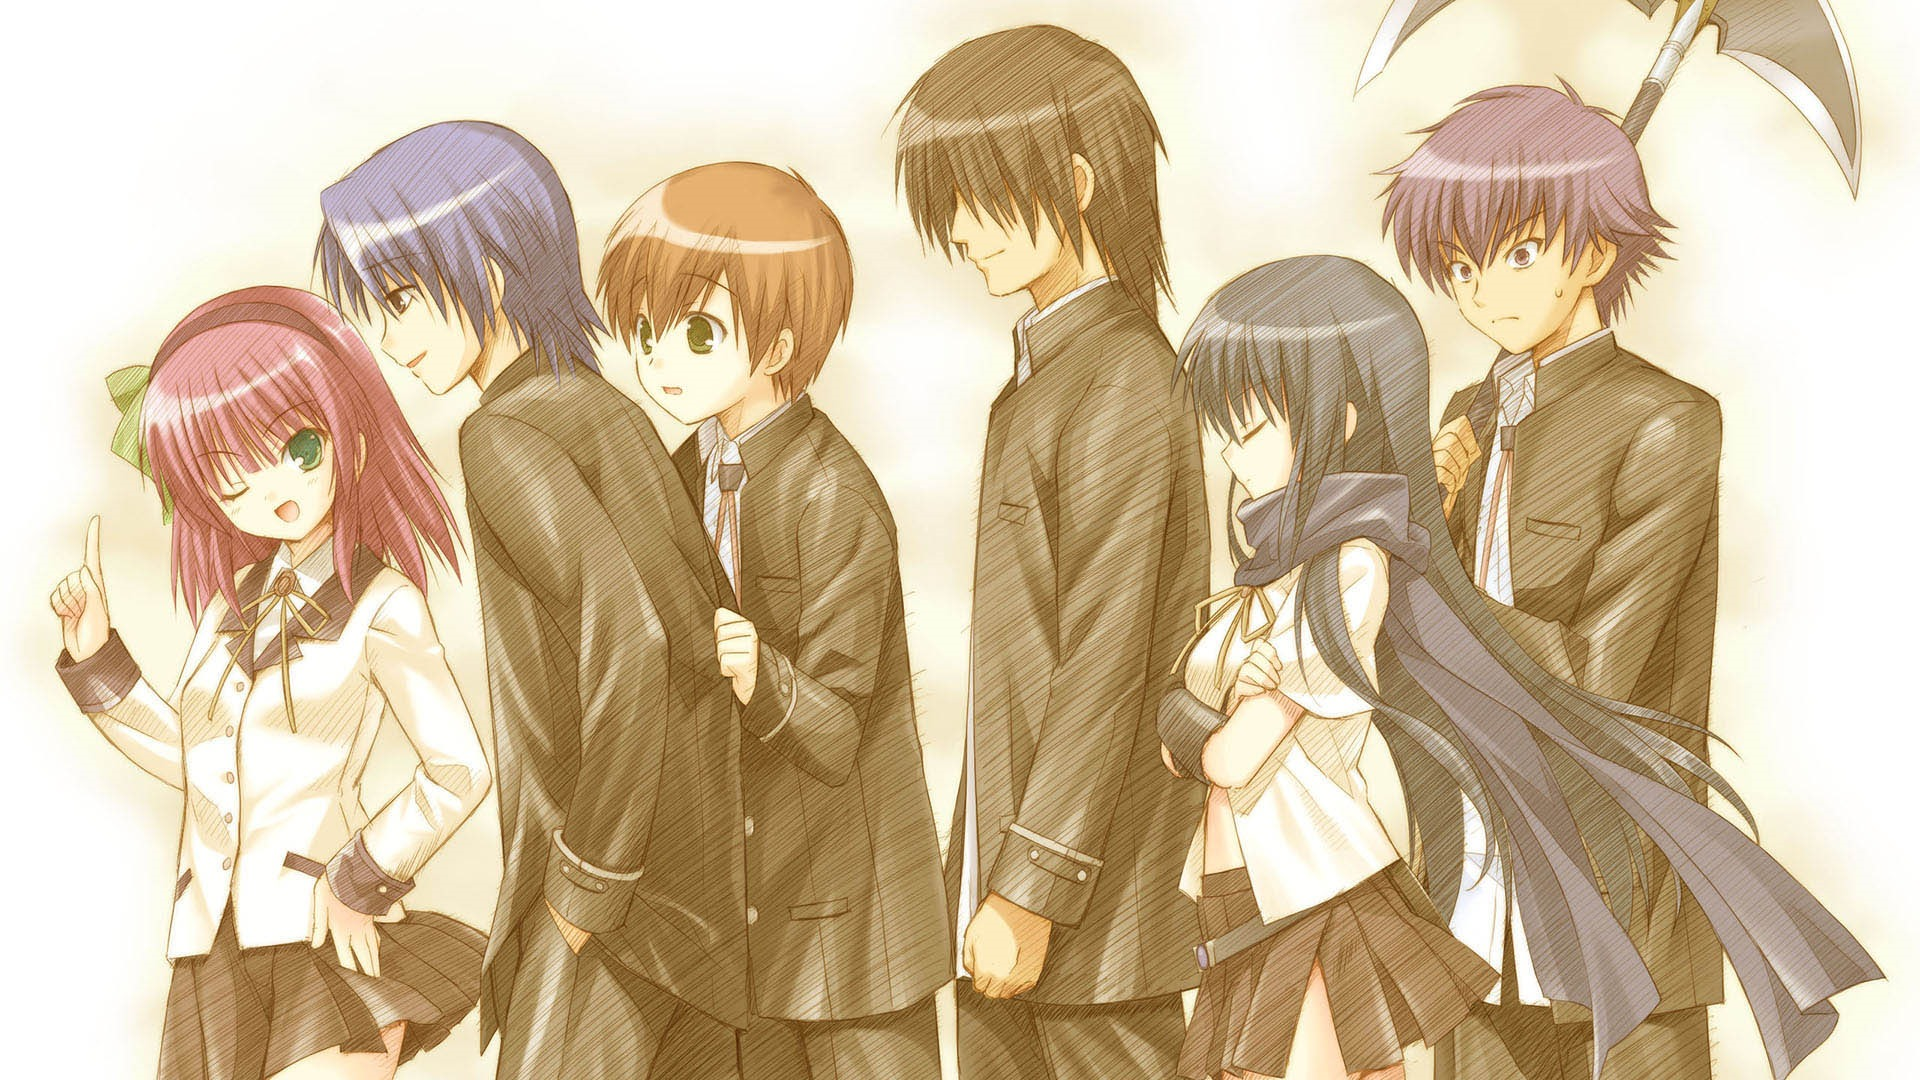 New Angel Beats! Visual Novel Images 4